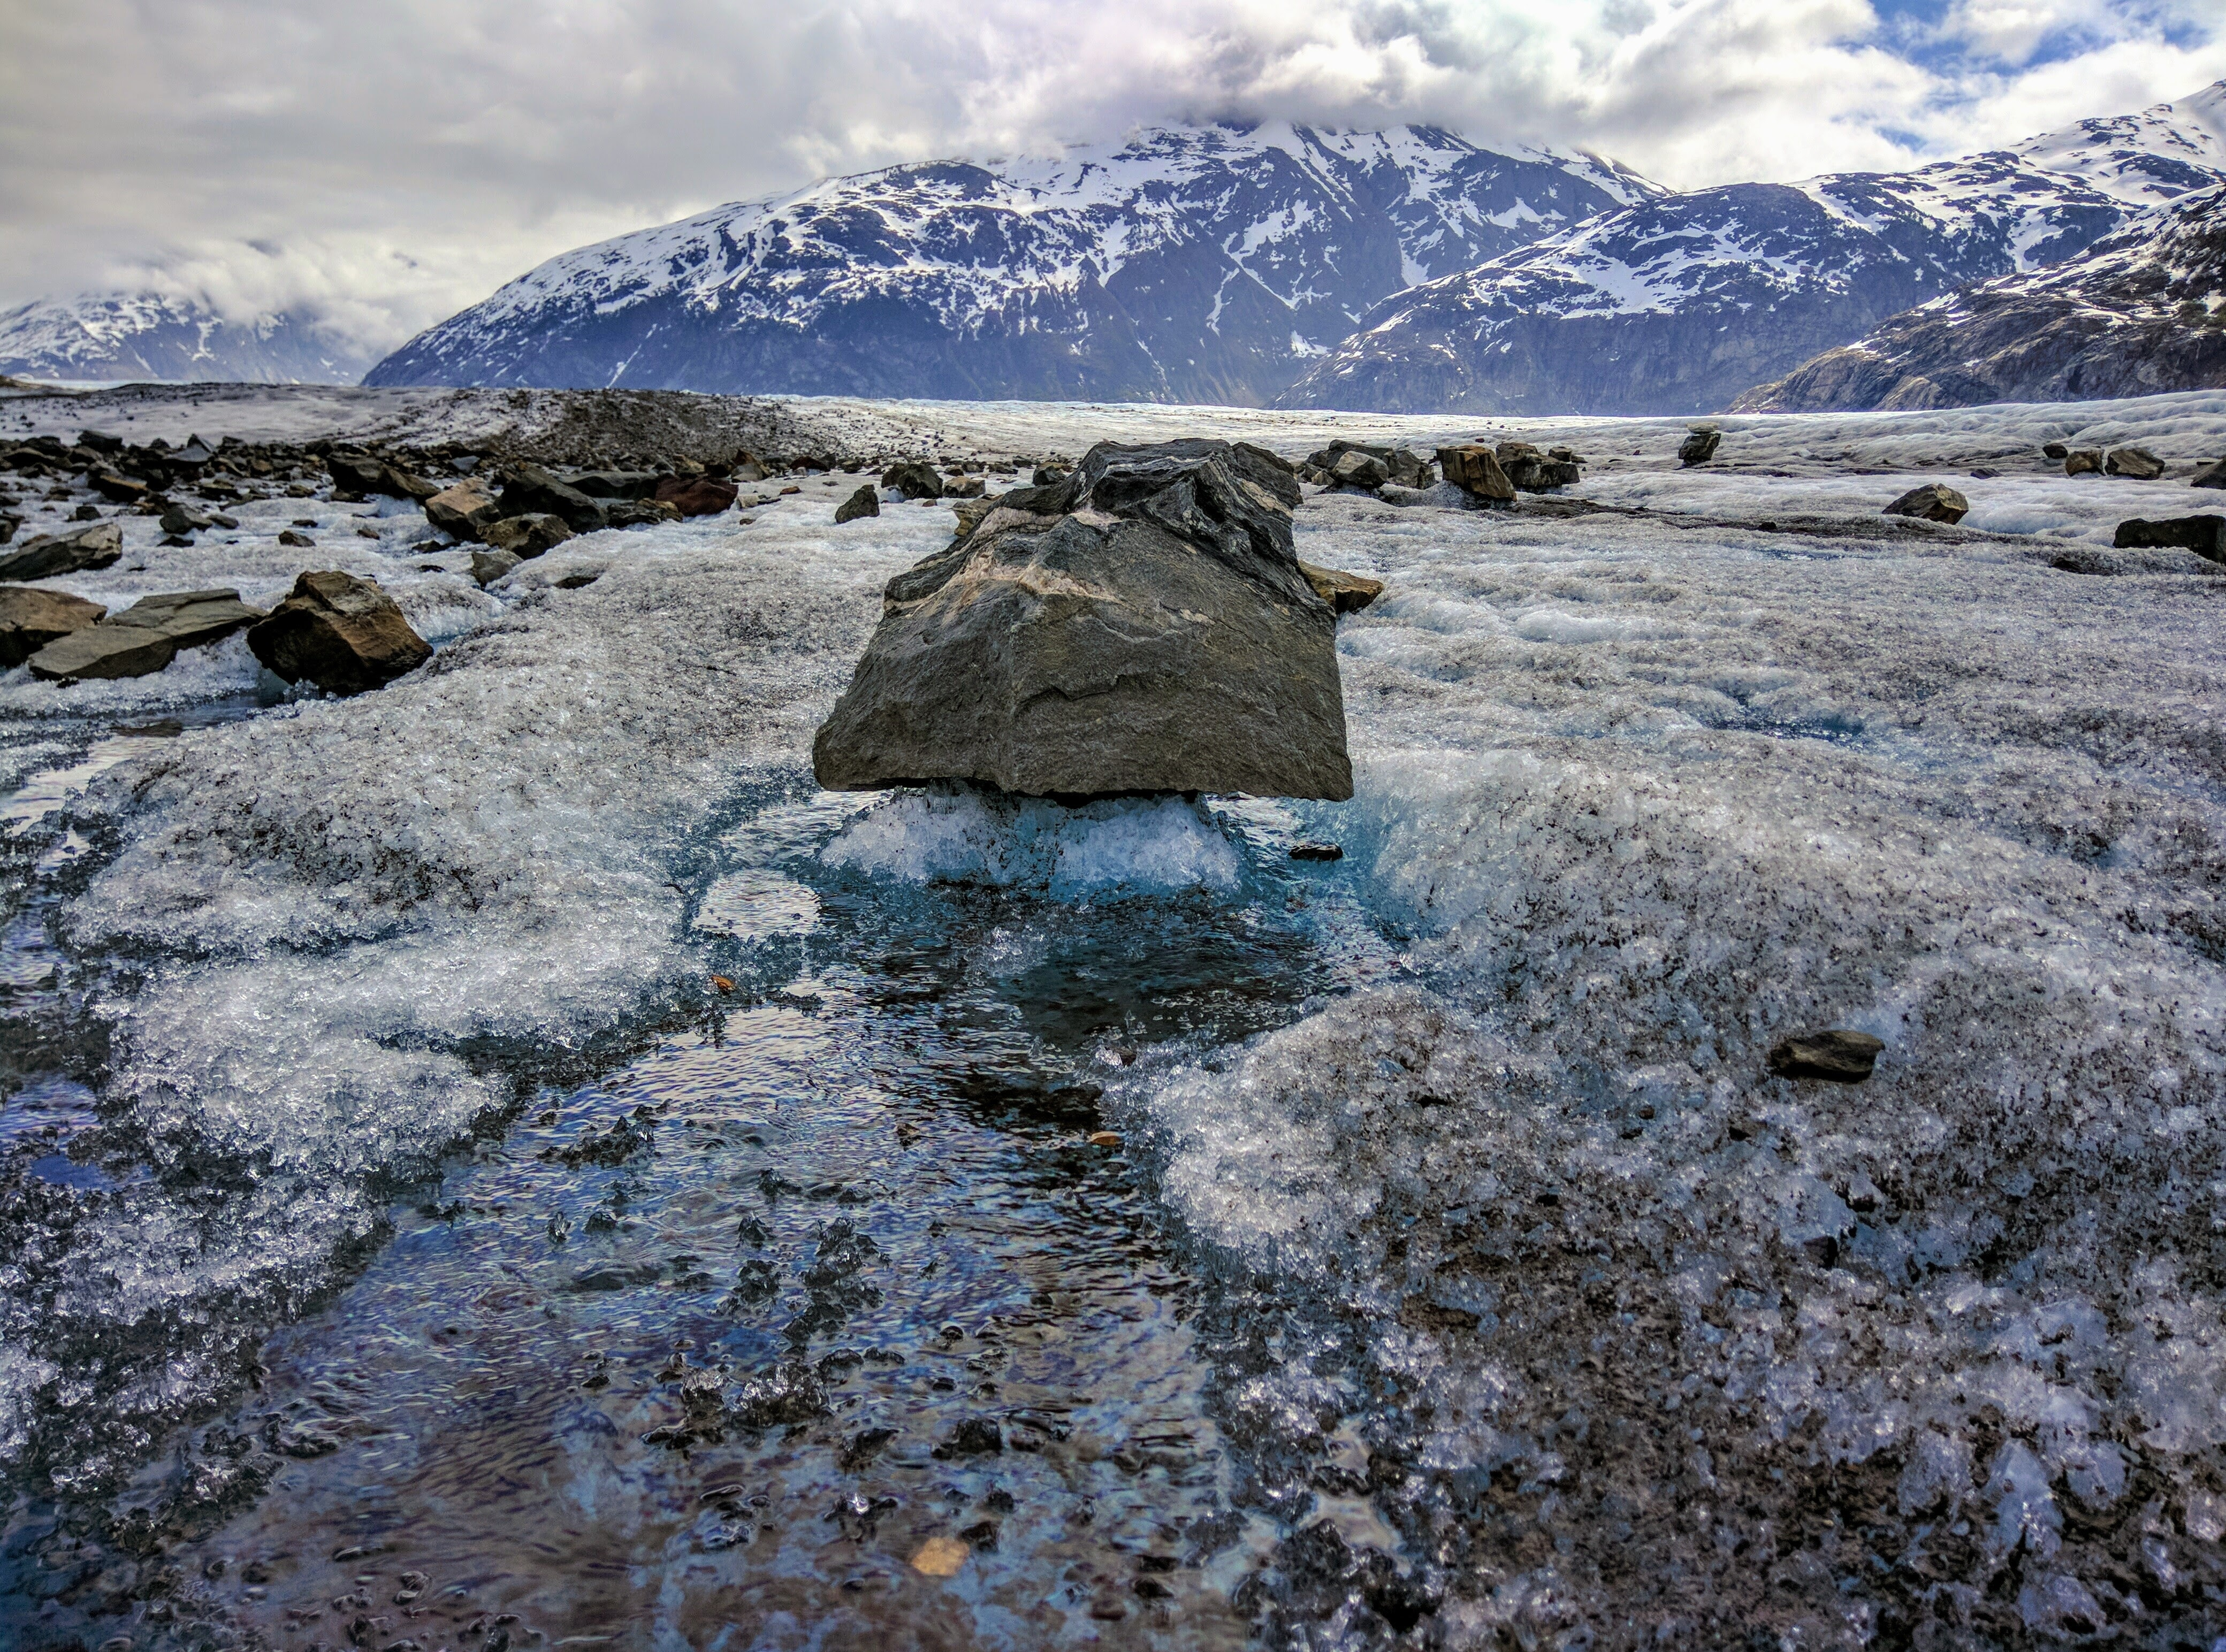 gray rock in body of water at daytime